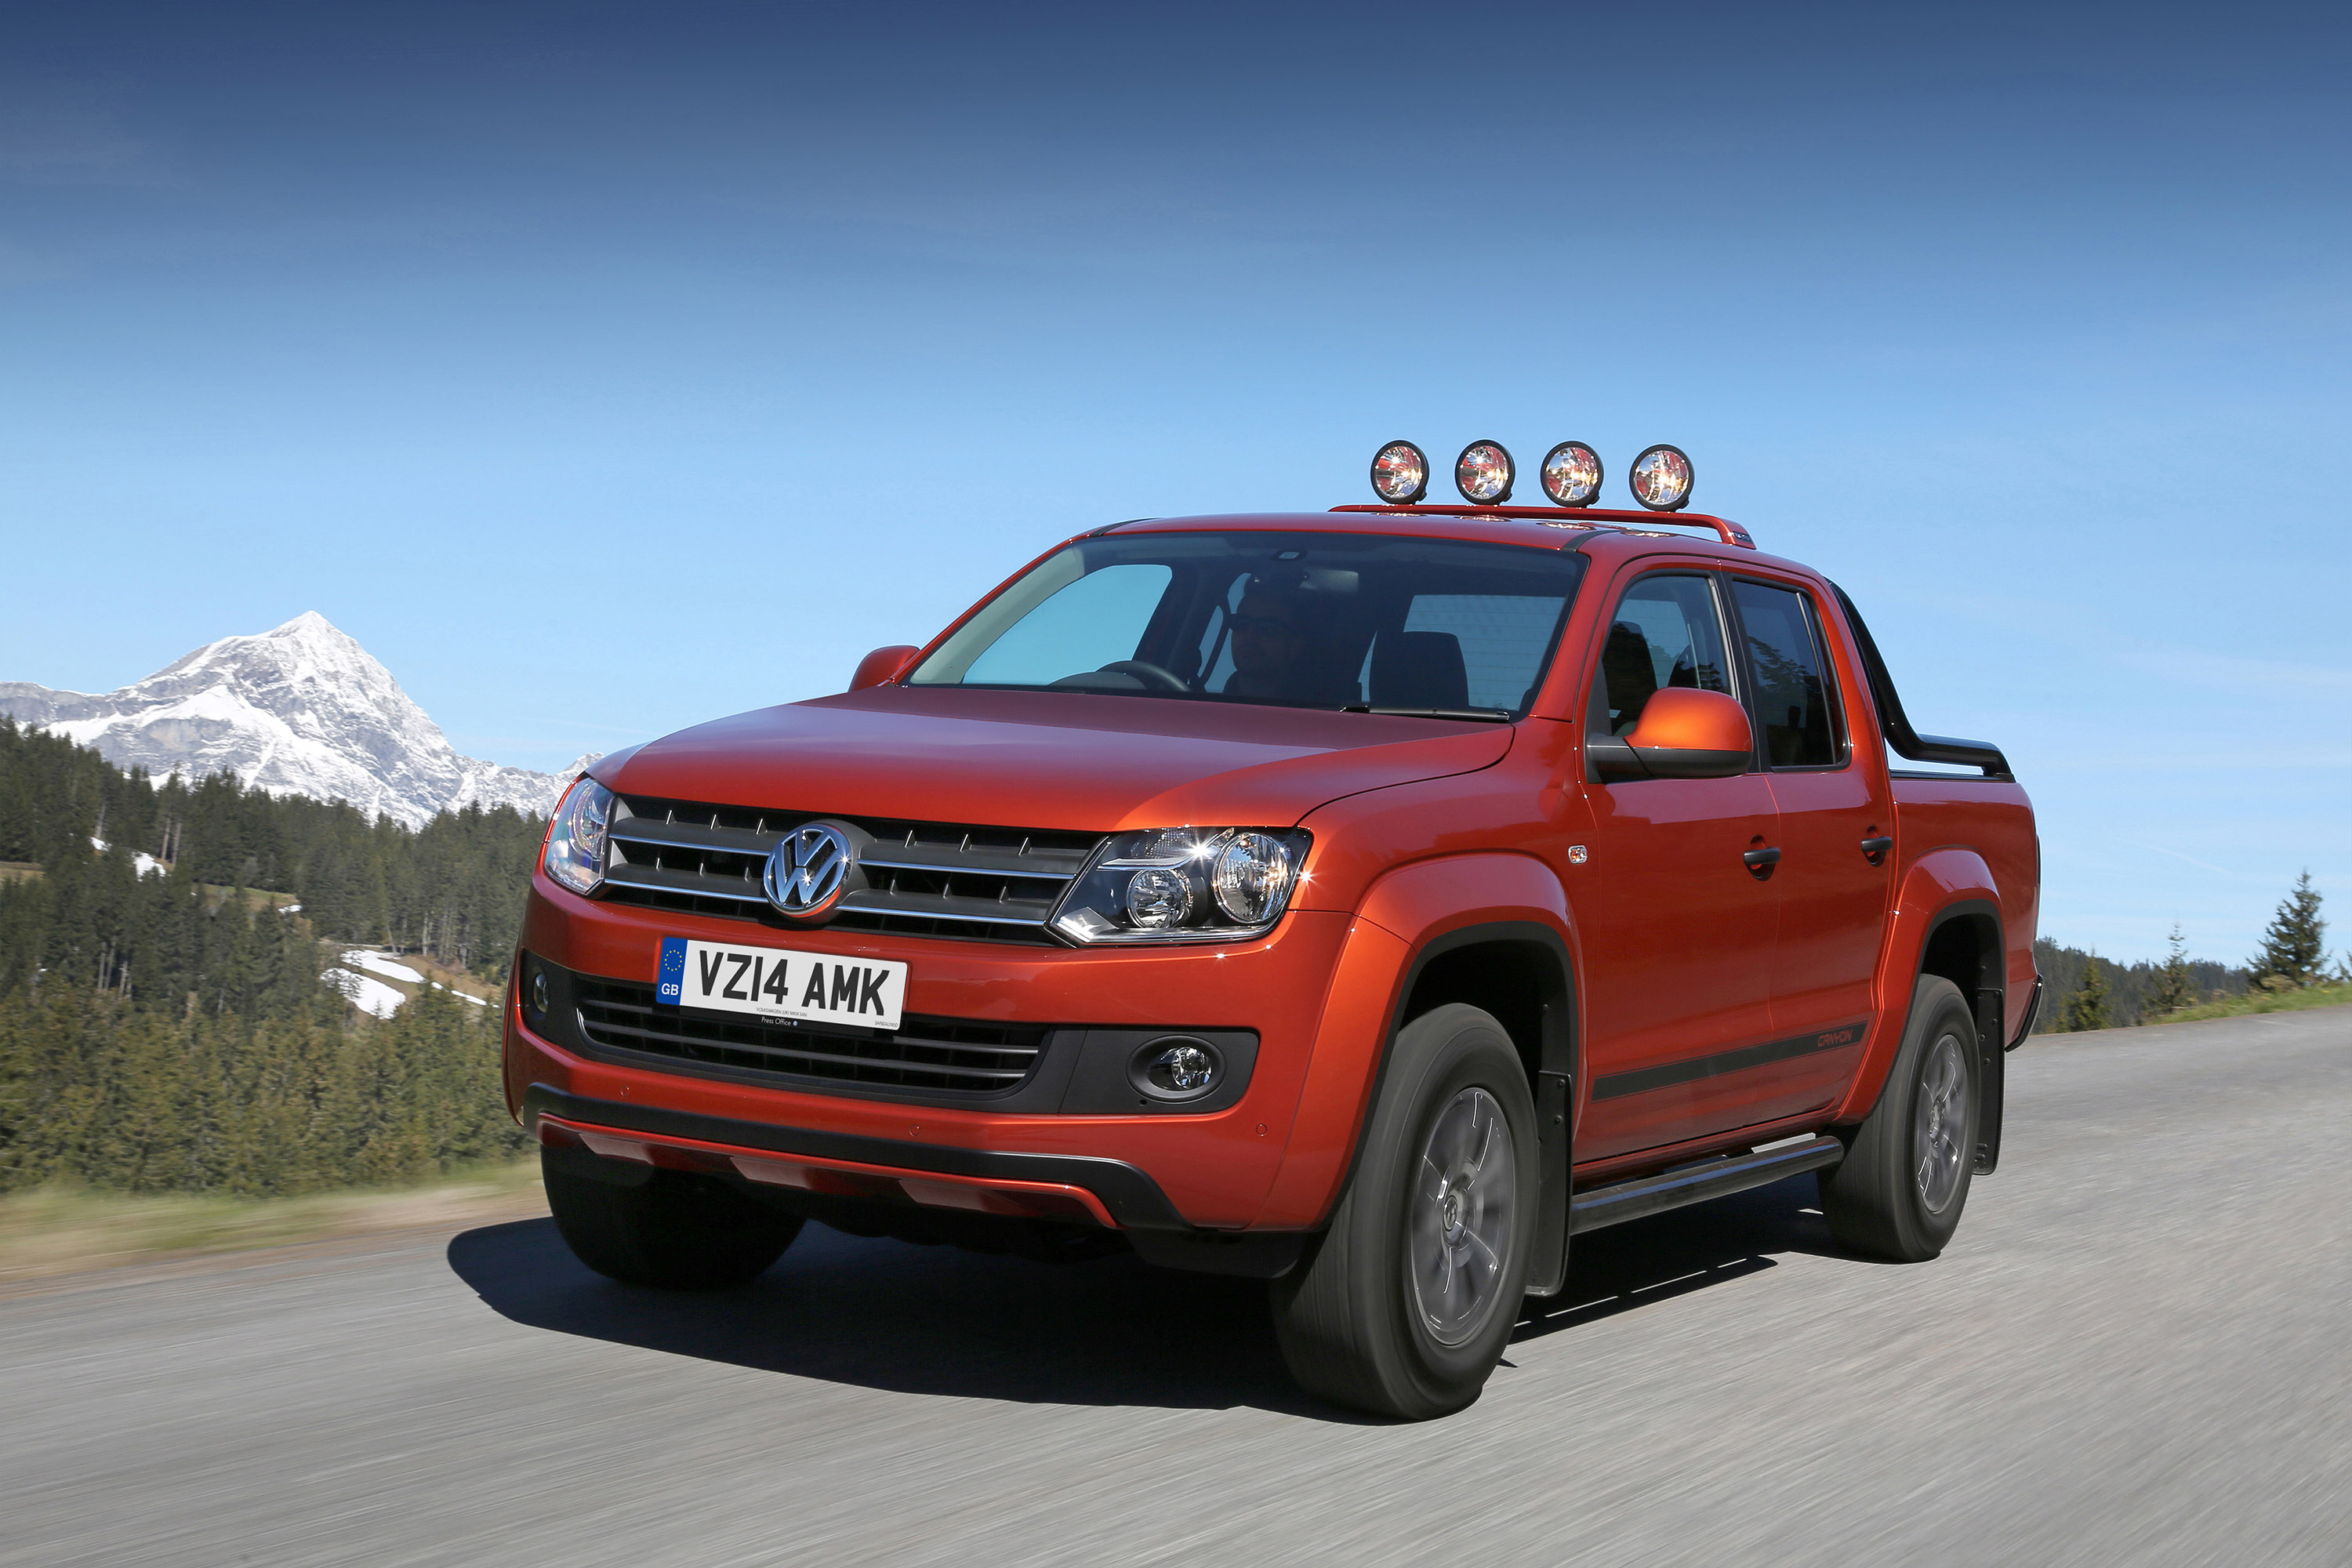 2014 volkswagen amarok canyon special edition. Black Bedroom Furniture Sets. Home Design Ideas